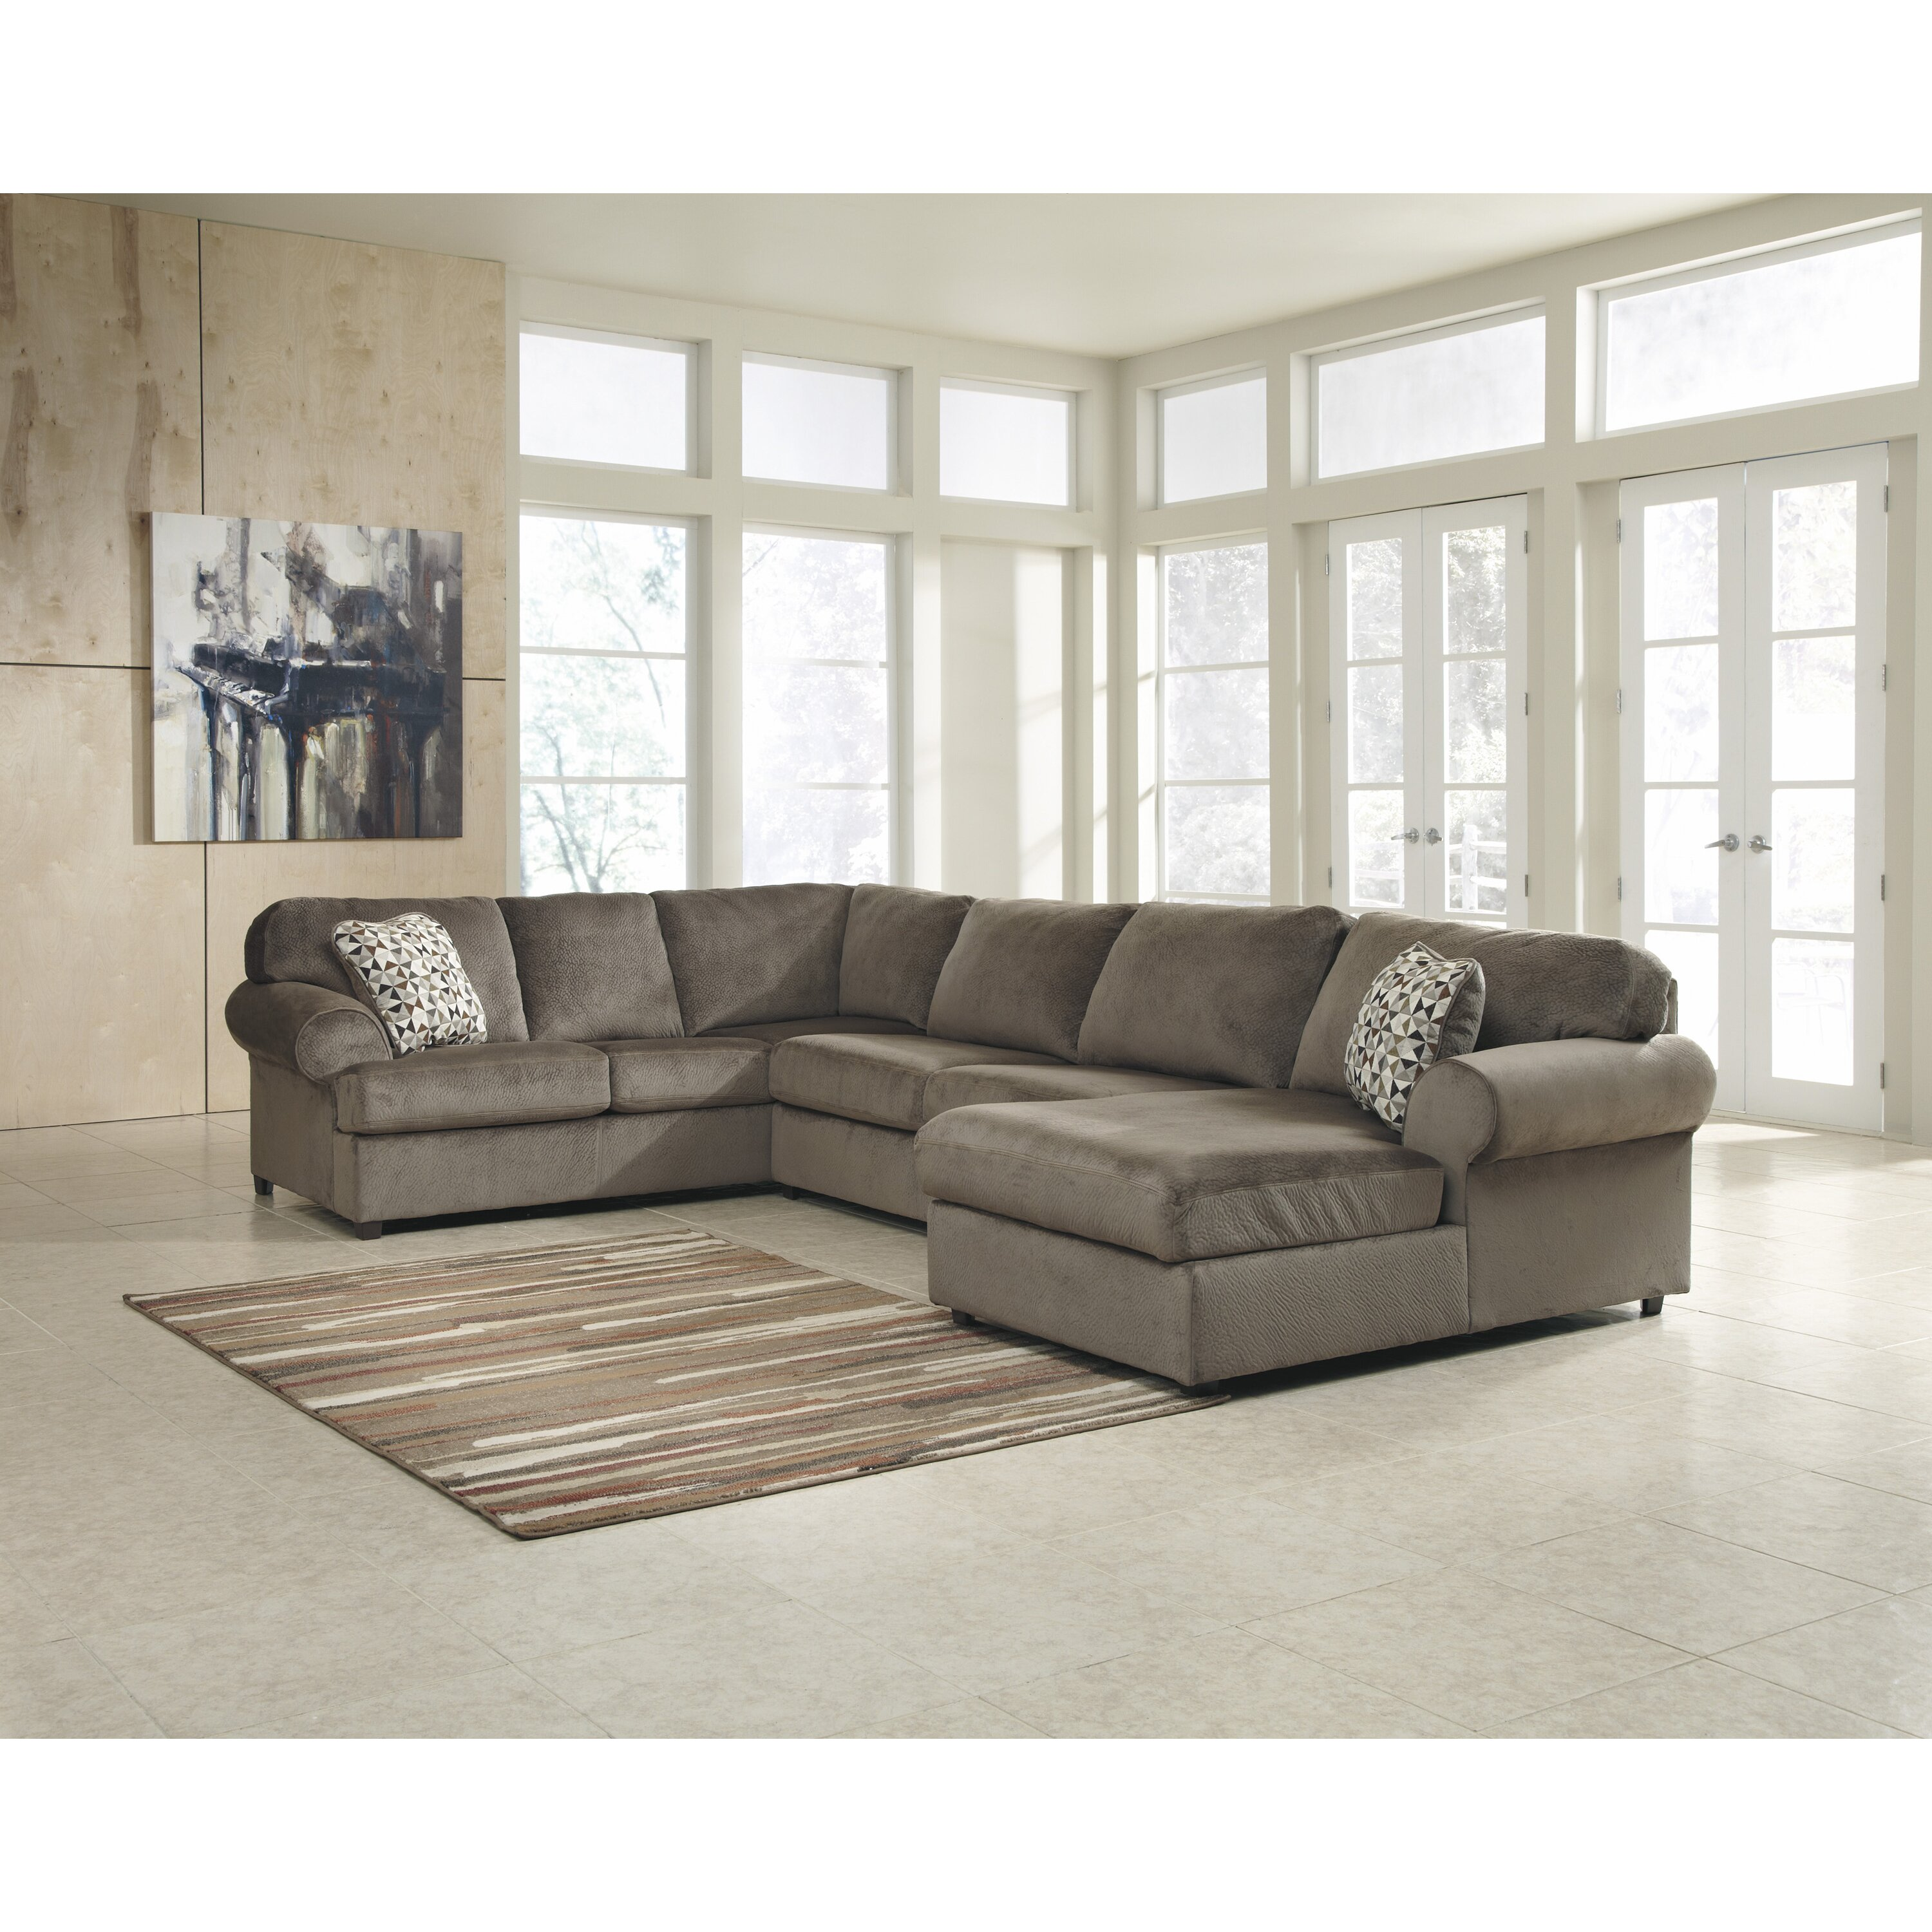 Surprising Jessa Place Sectional Freestyle Pewter Sectional Living Alphanode Cool Chair Designs And Ideas Alphanodeonline